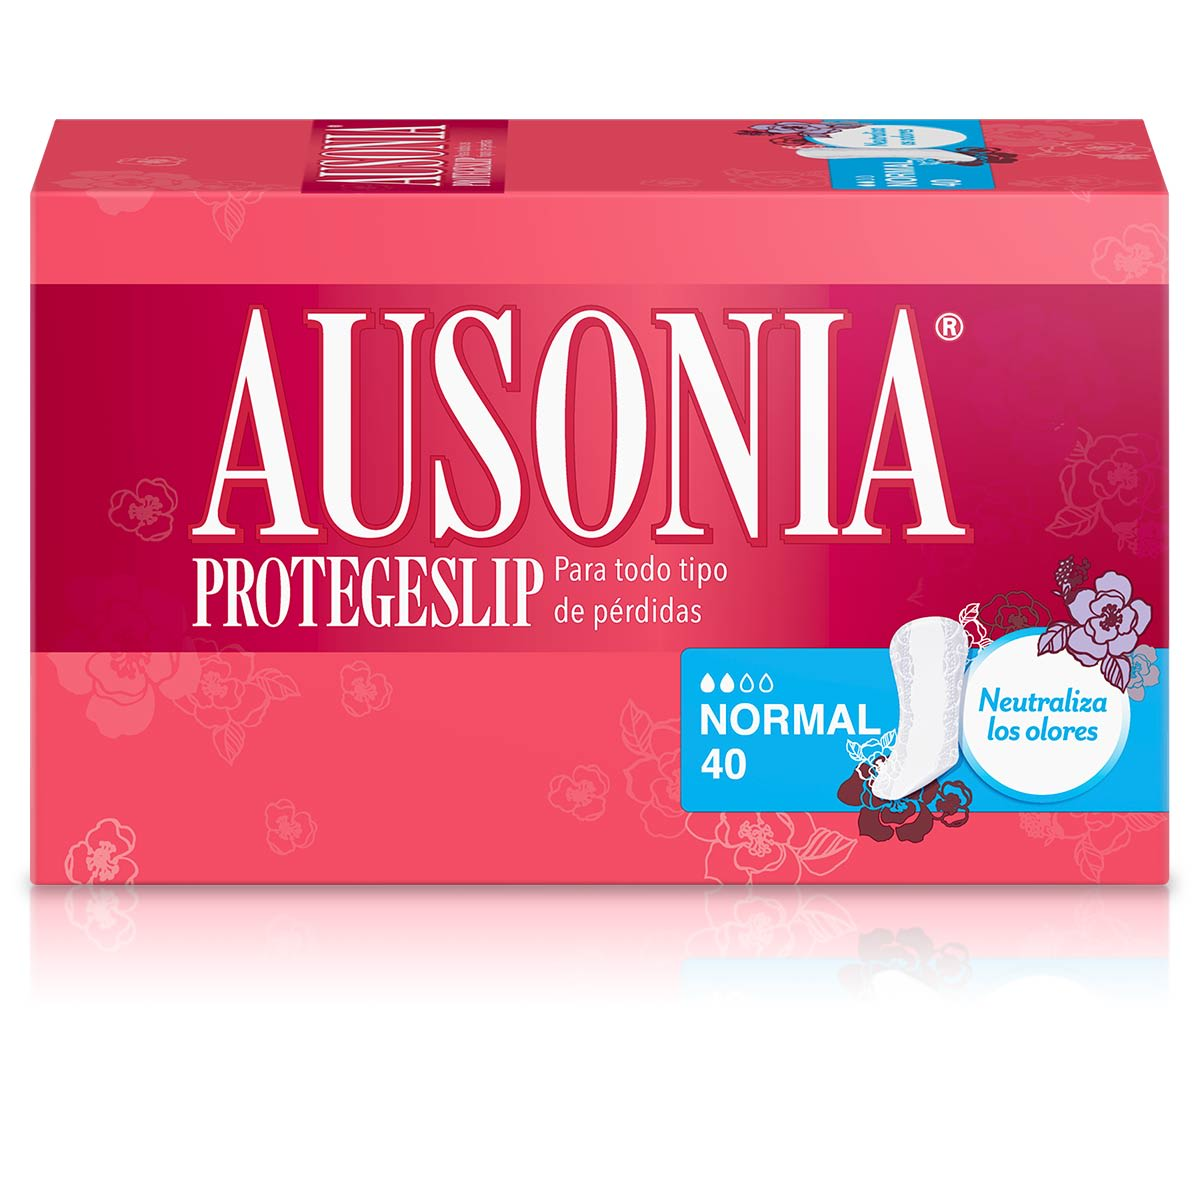 Ausonia Protegeslips Normal